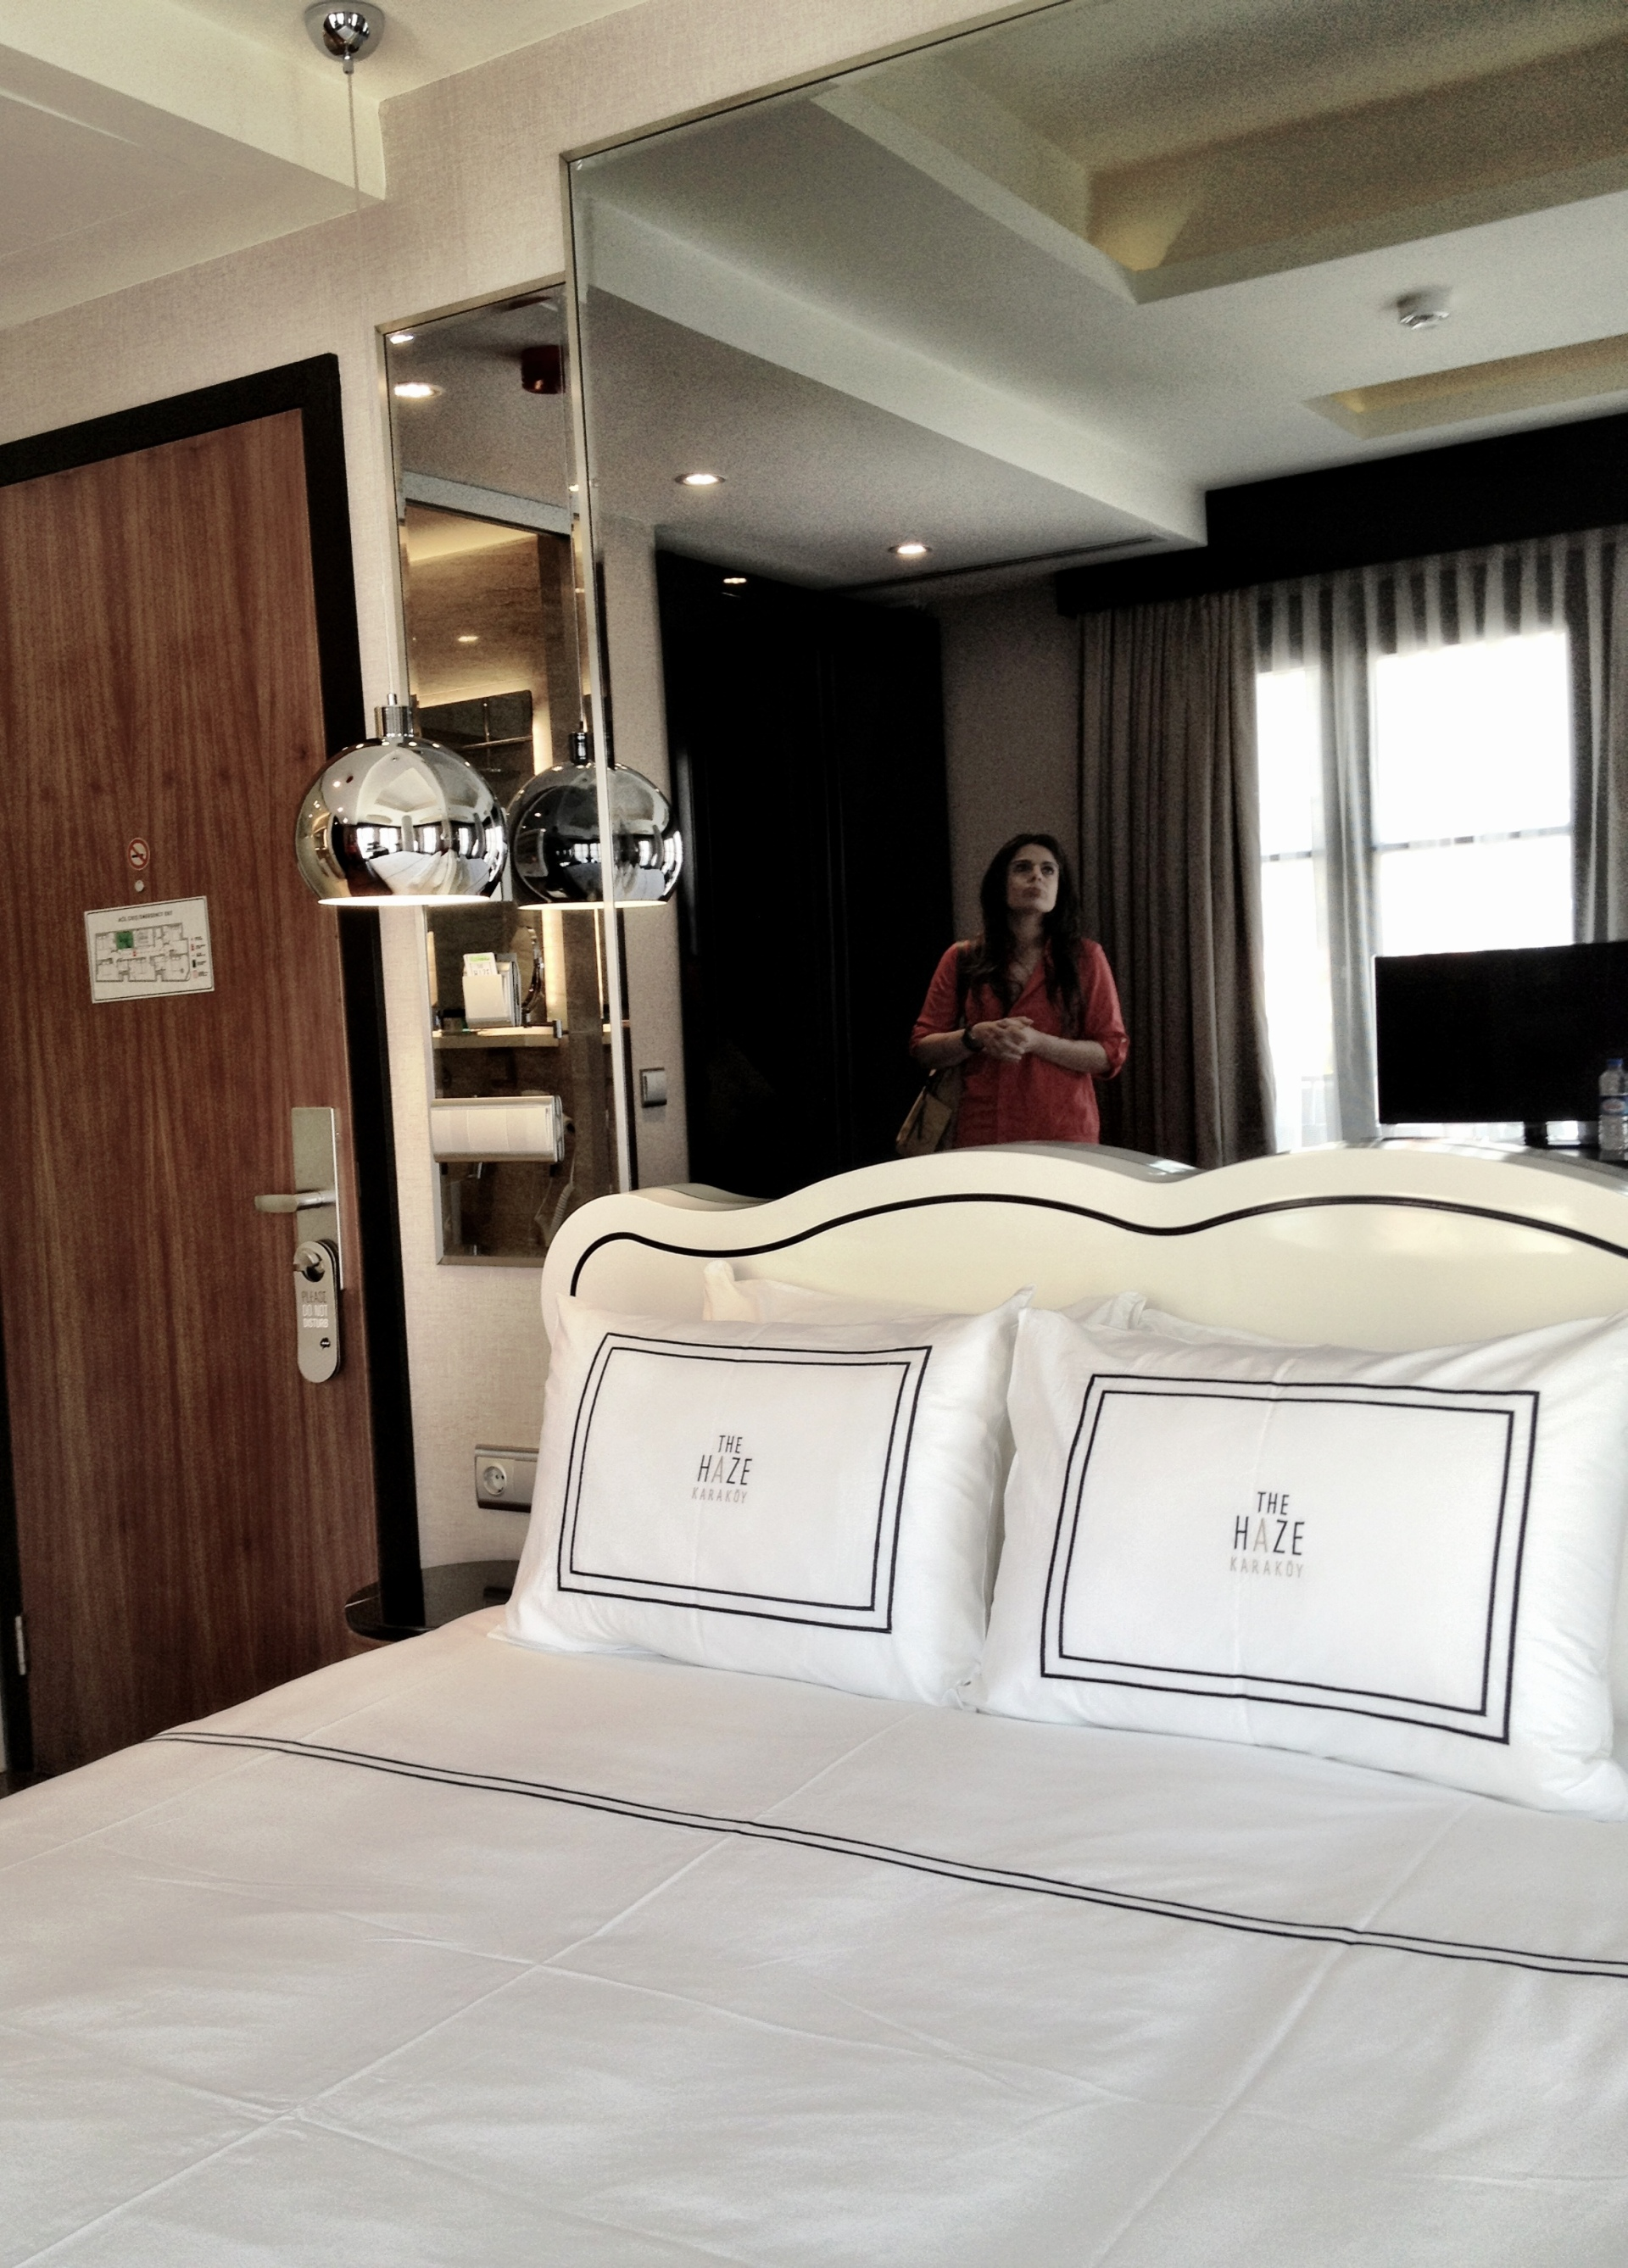 The Haze boutique Hotel rooms